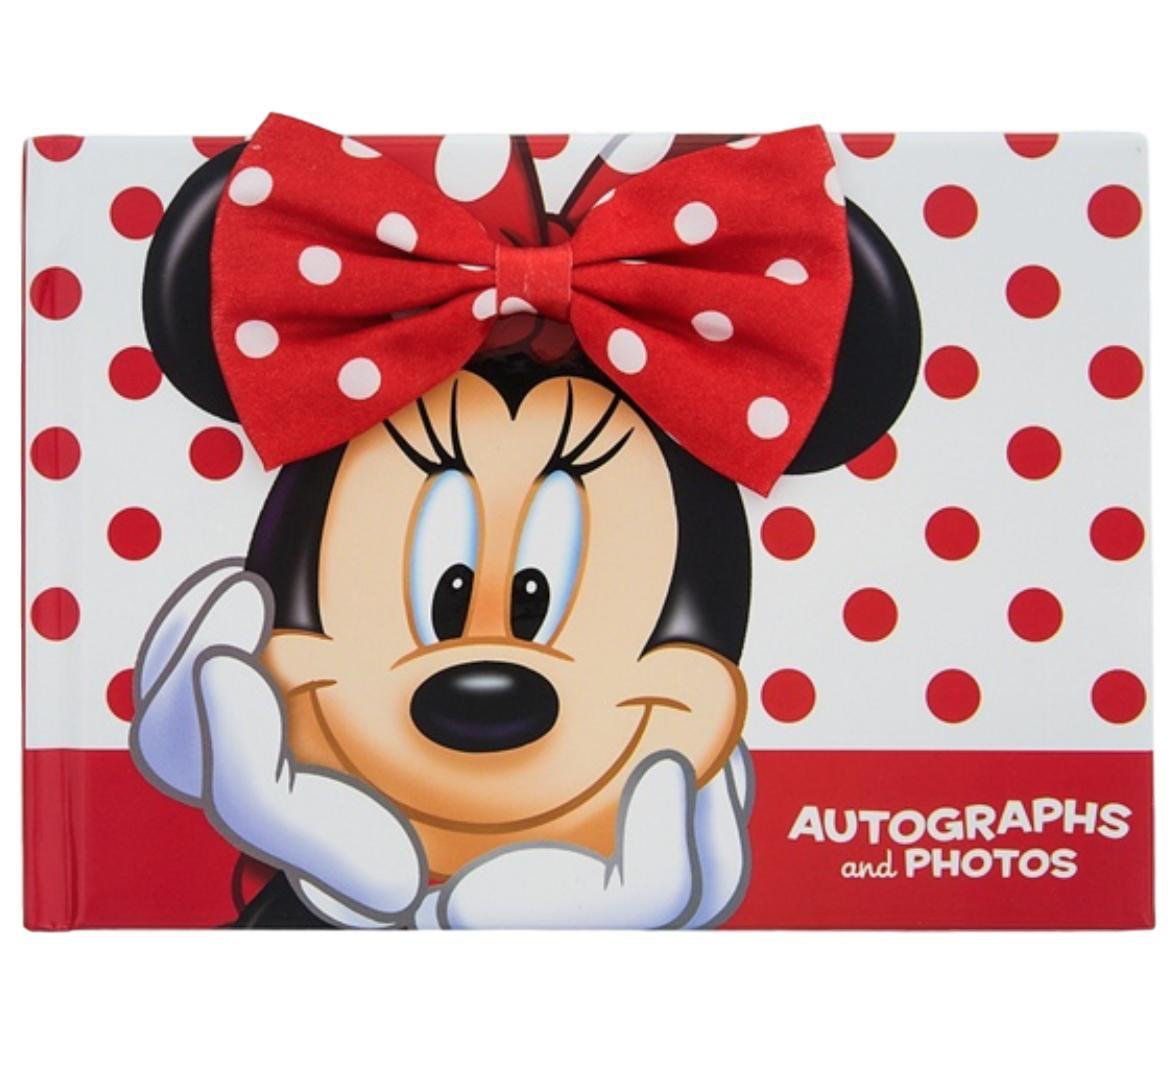 Disney Parks Minnie Mouse Autograph and Photo Book